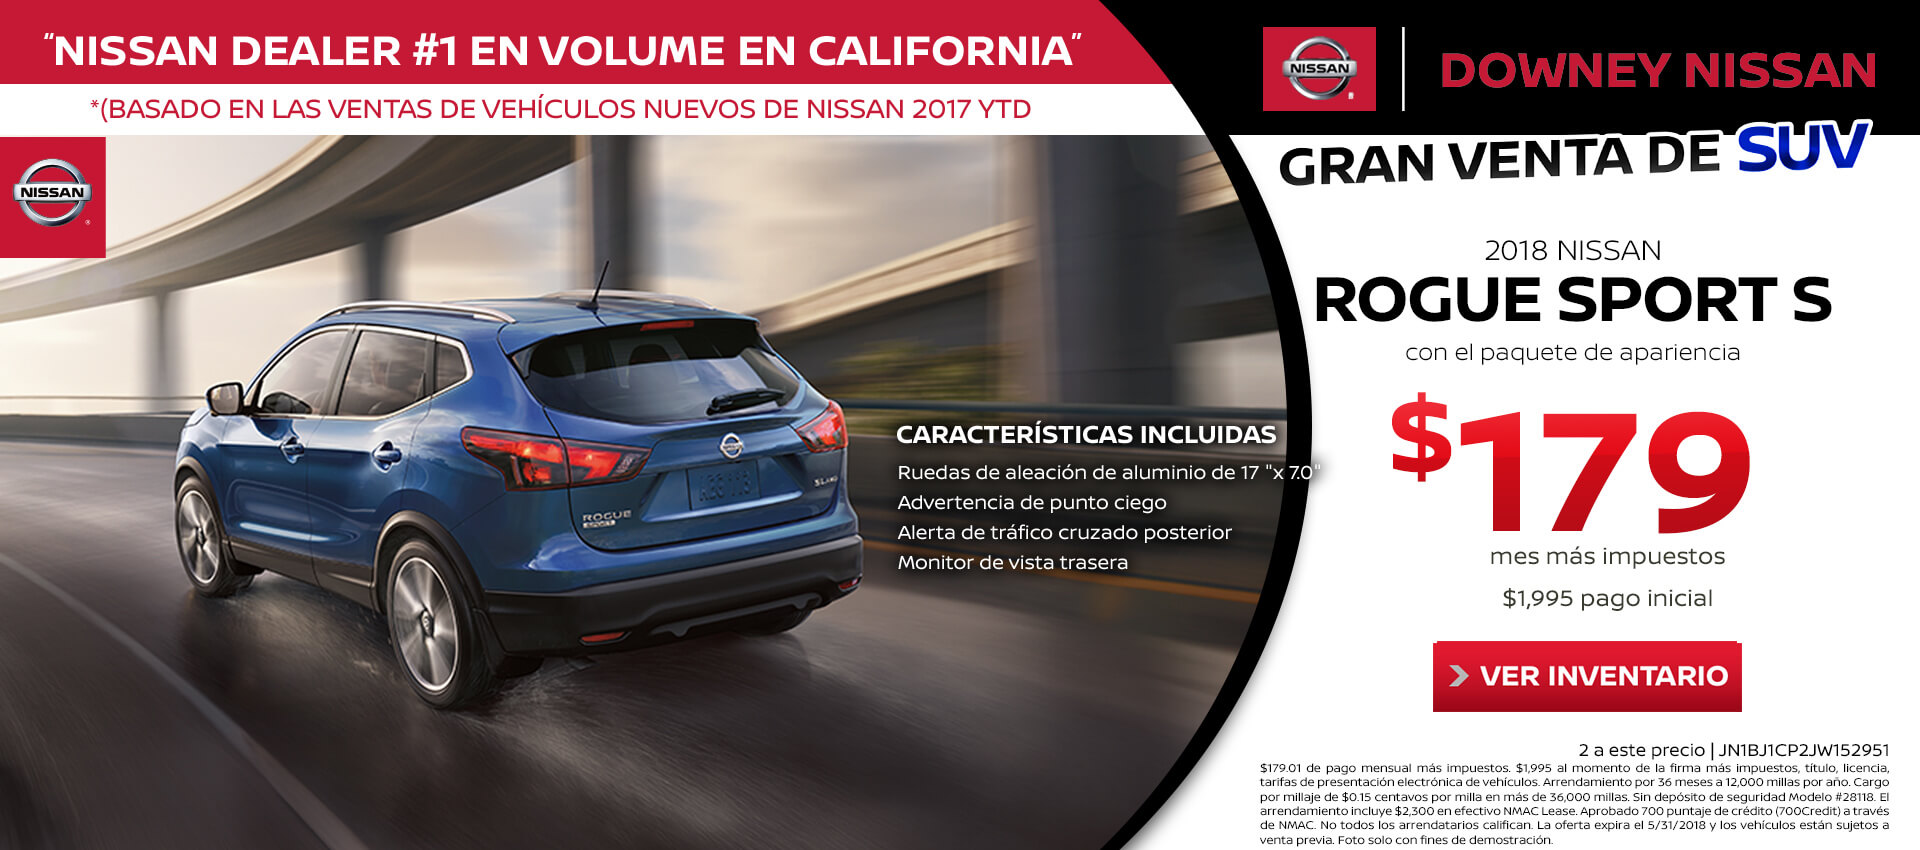 Rogue Sport Lease for $179